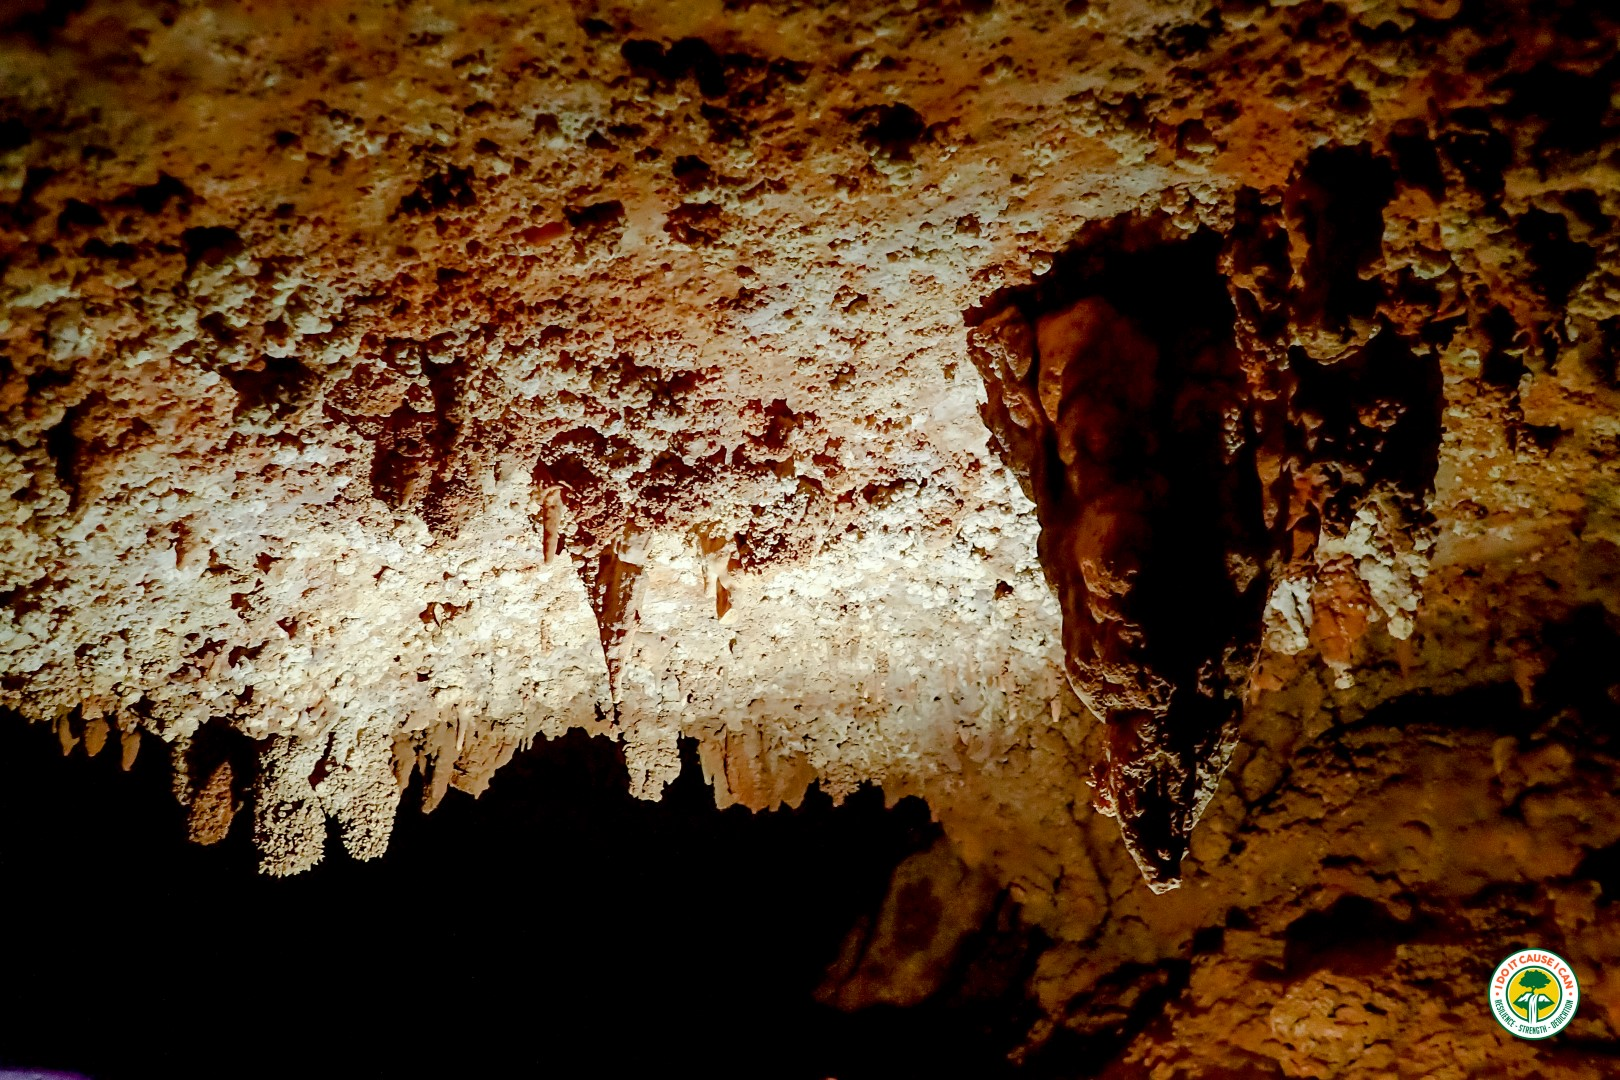 7th hole cave oman Caves of Oman